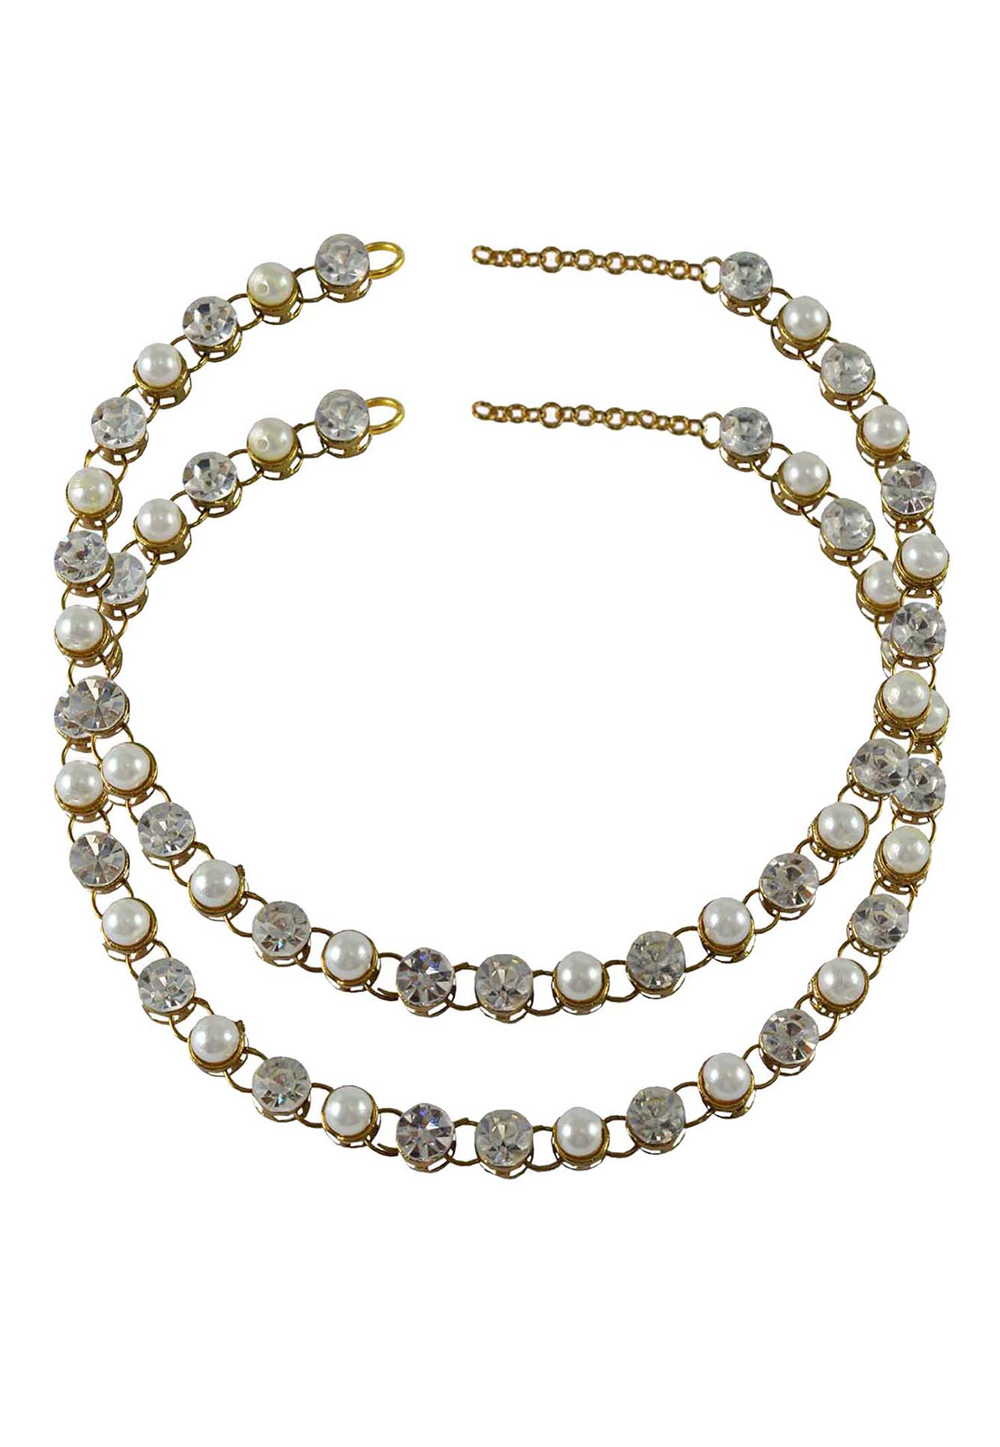 White Brass Gold Plated Anklets 171272